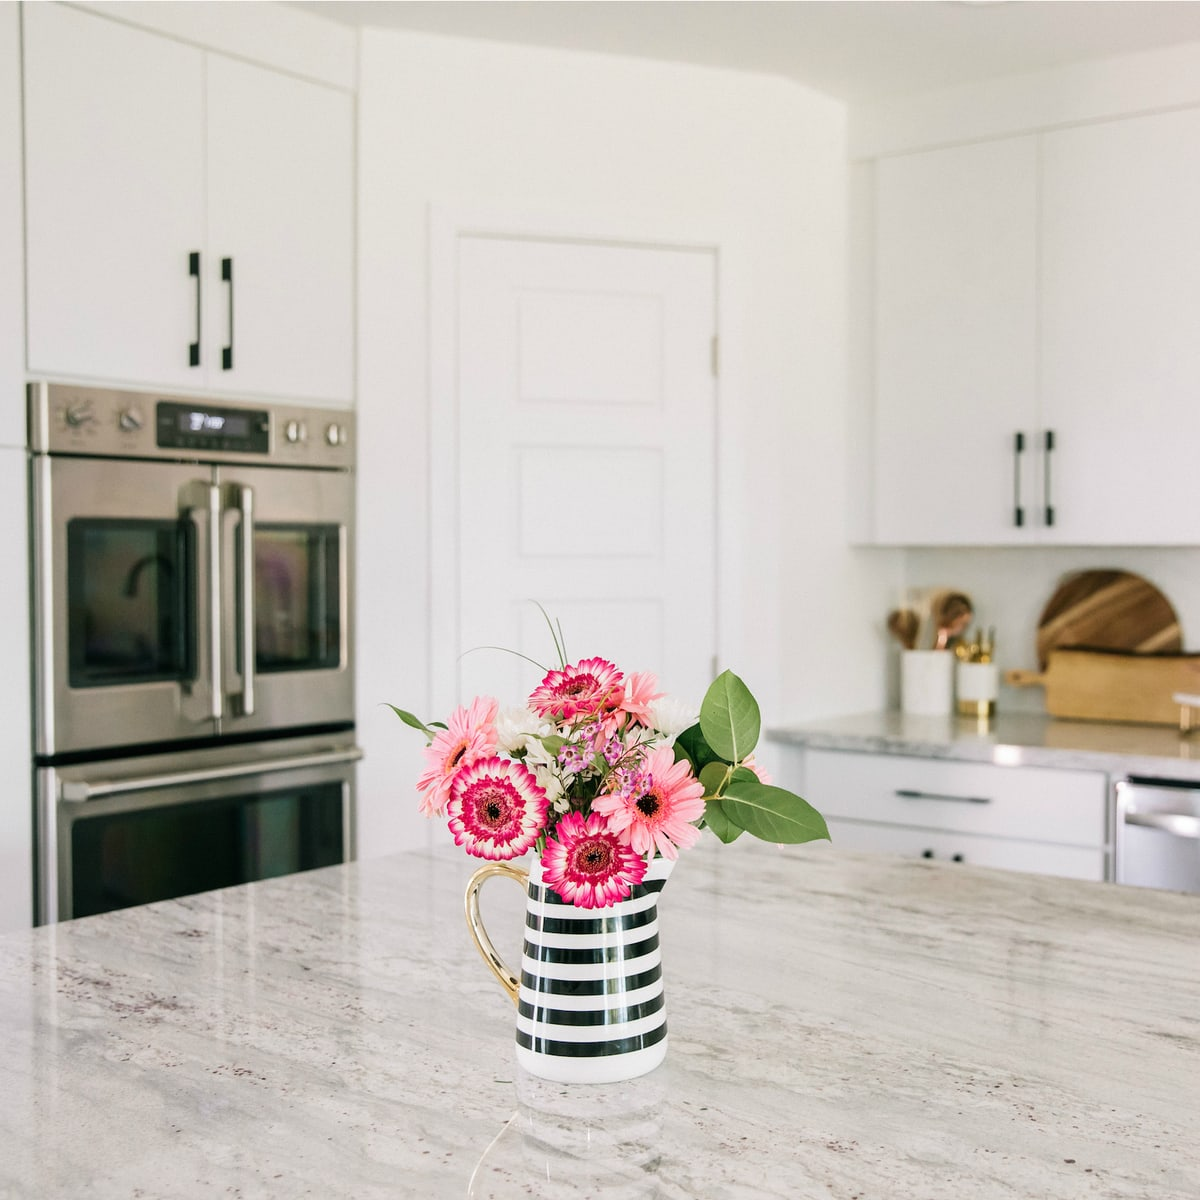 Kitchen Remodel Reveal: Before & After